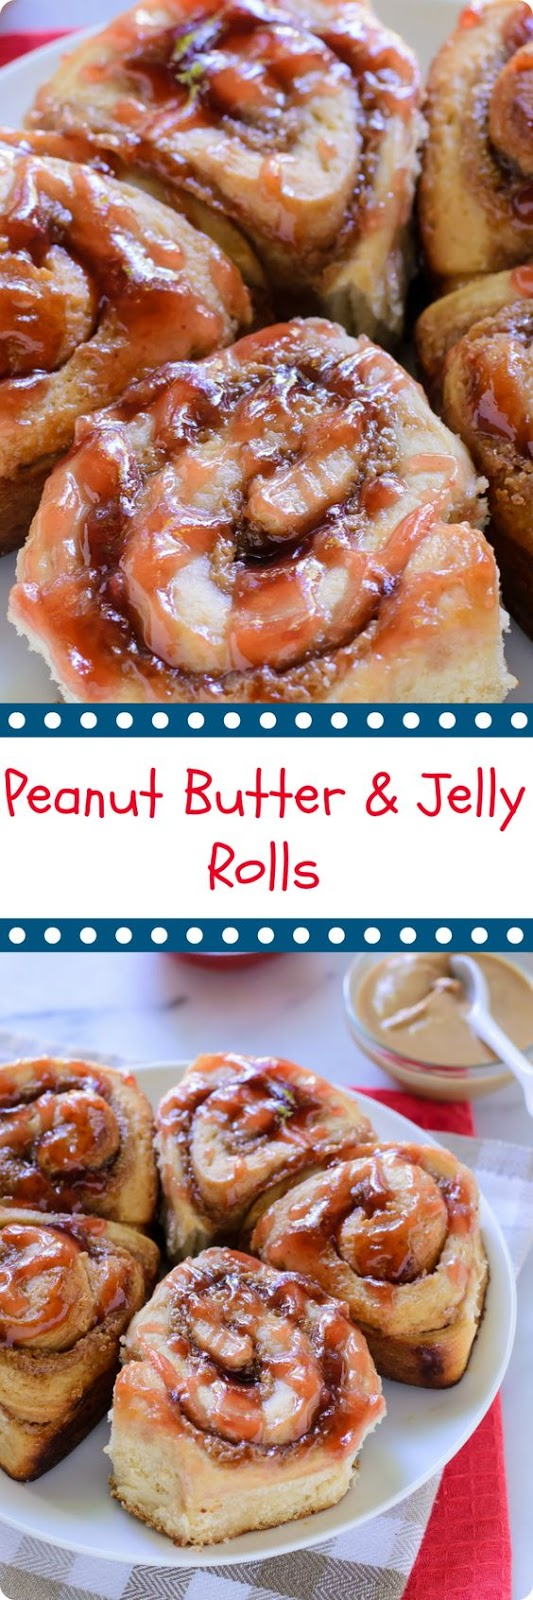 Peanut Butter and Jelly Swirl Rolls